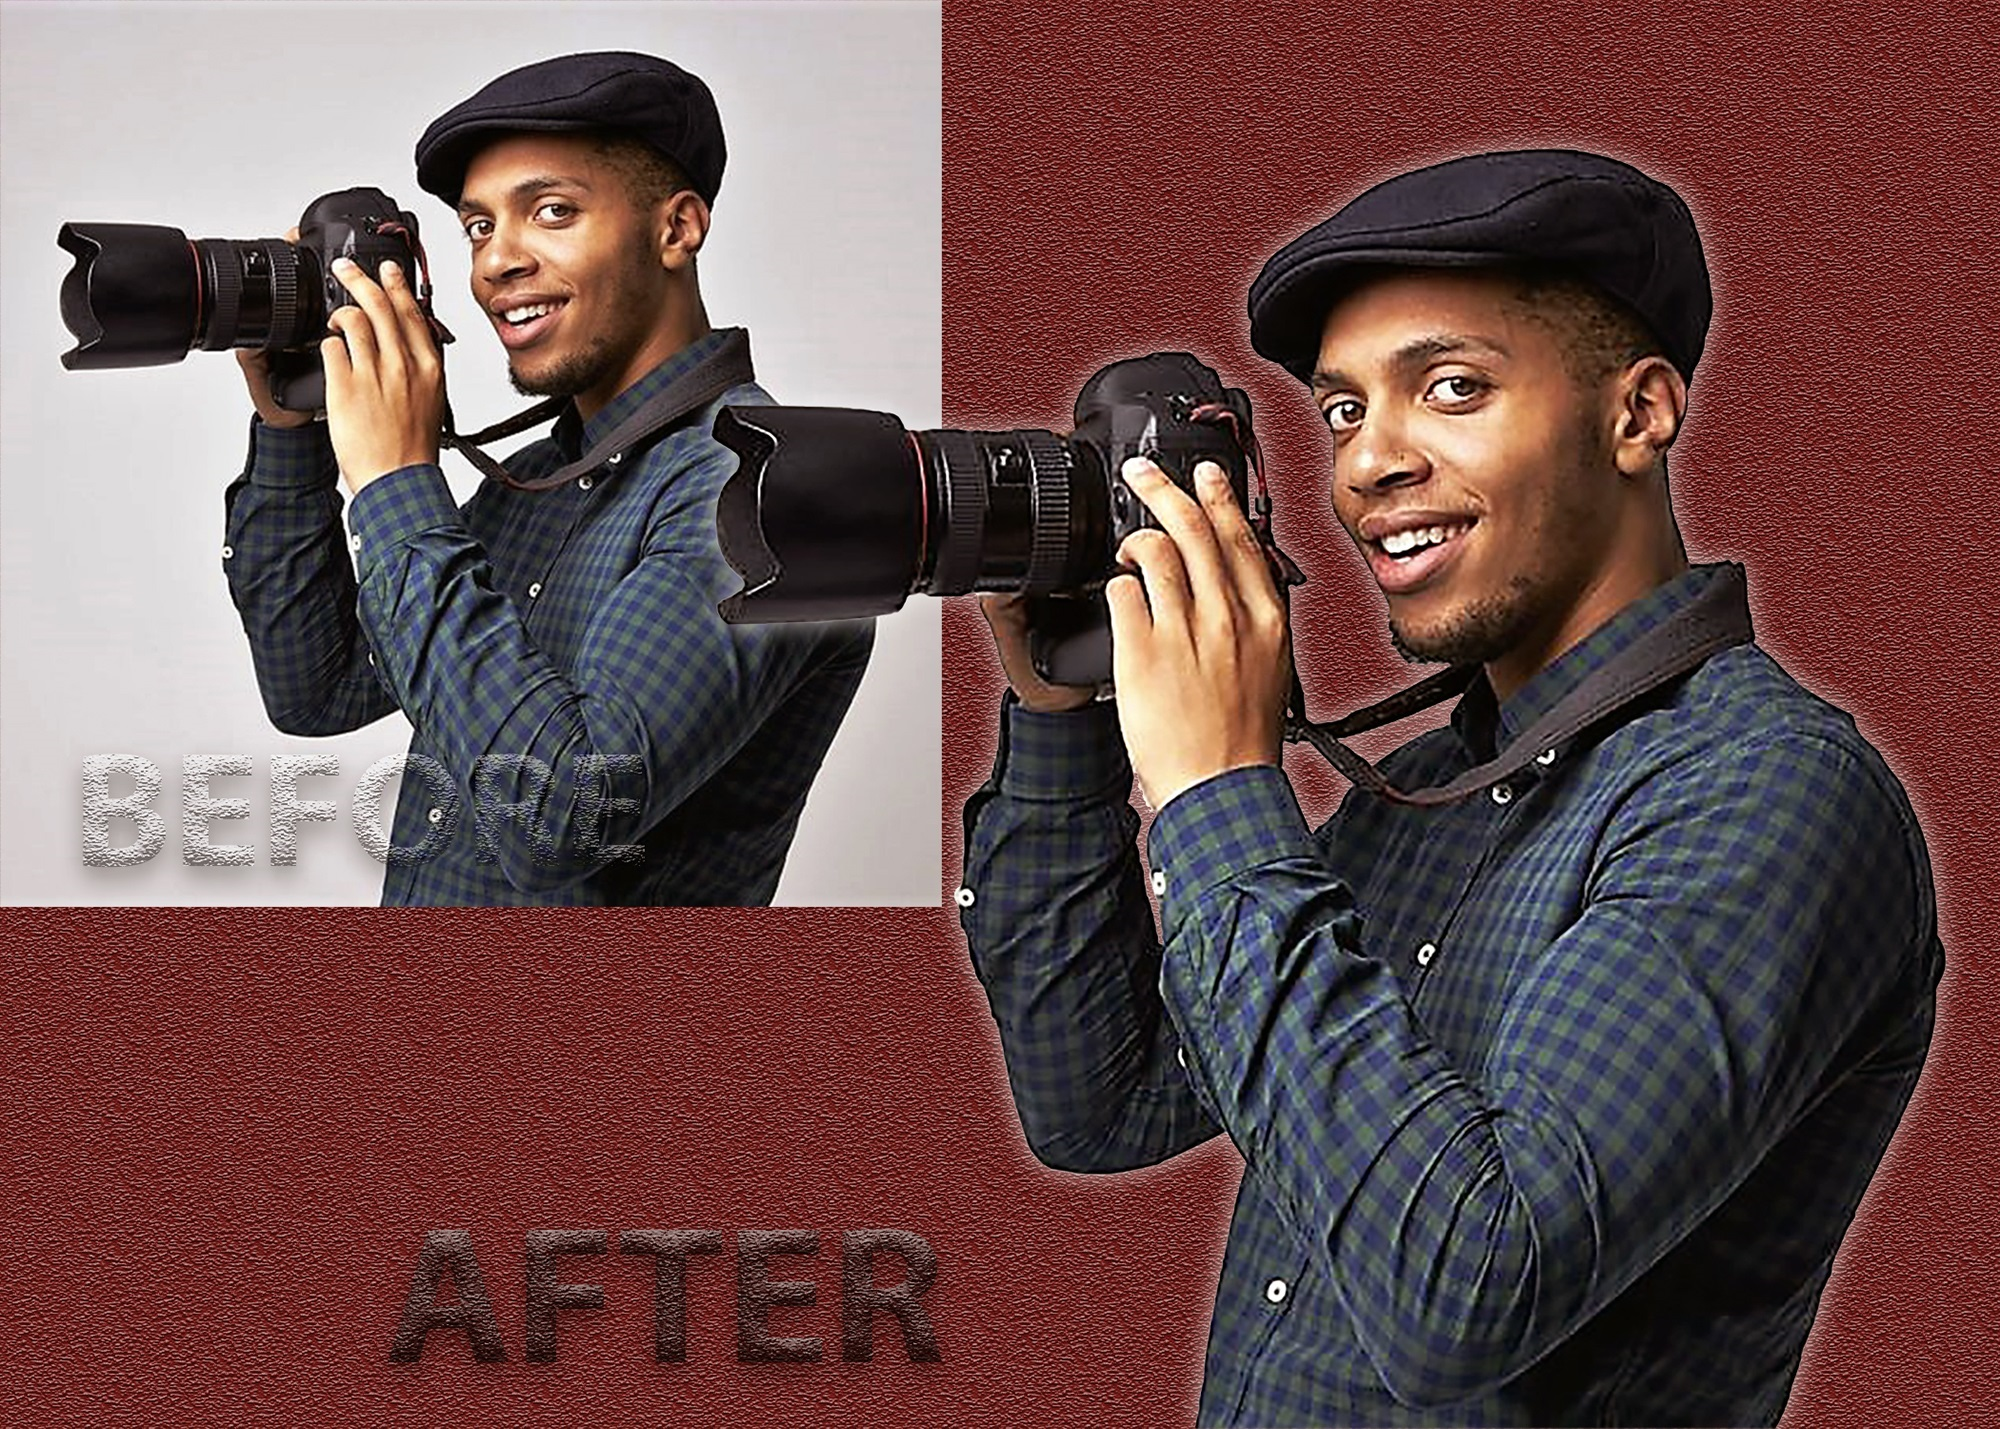 I will do photo editing,  resizing and background removal